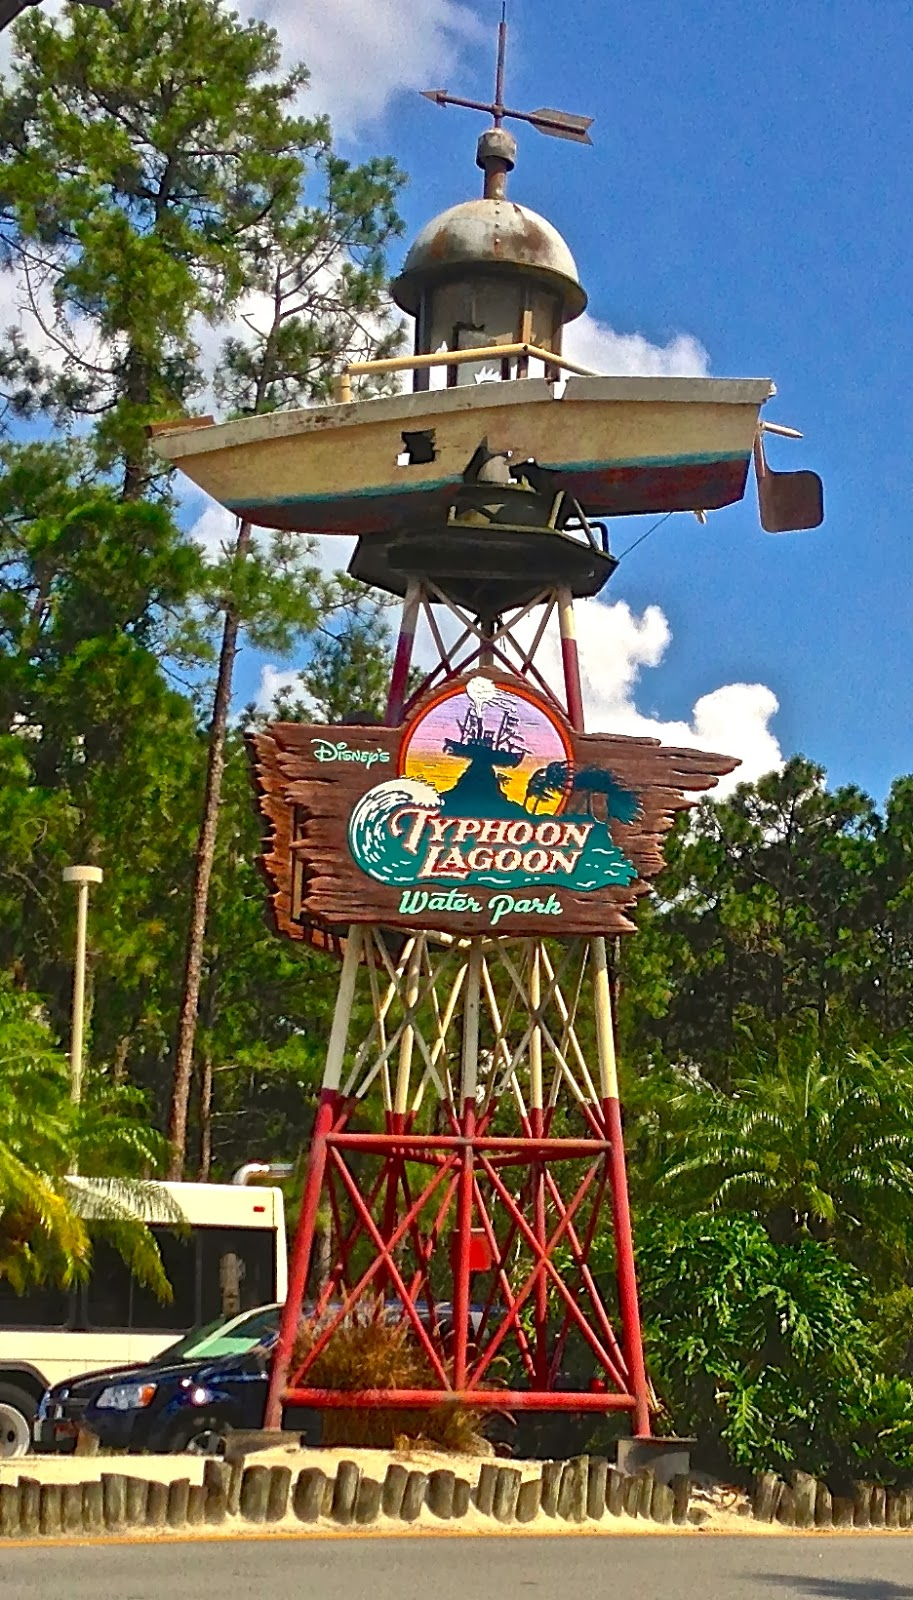 Typhoon Lagoon, Walt Disney World | Morgan's Milieu: Typhoon Lagoon Entrance